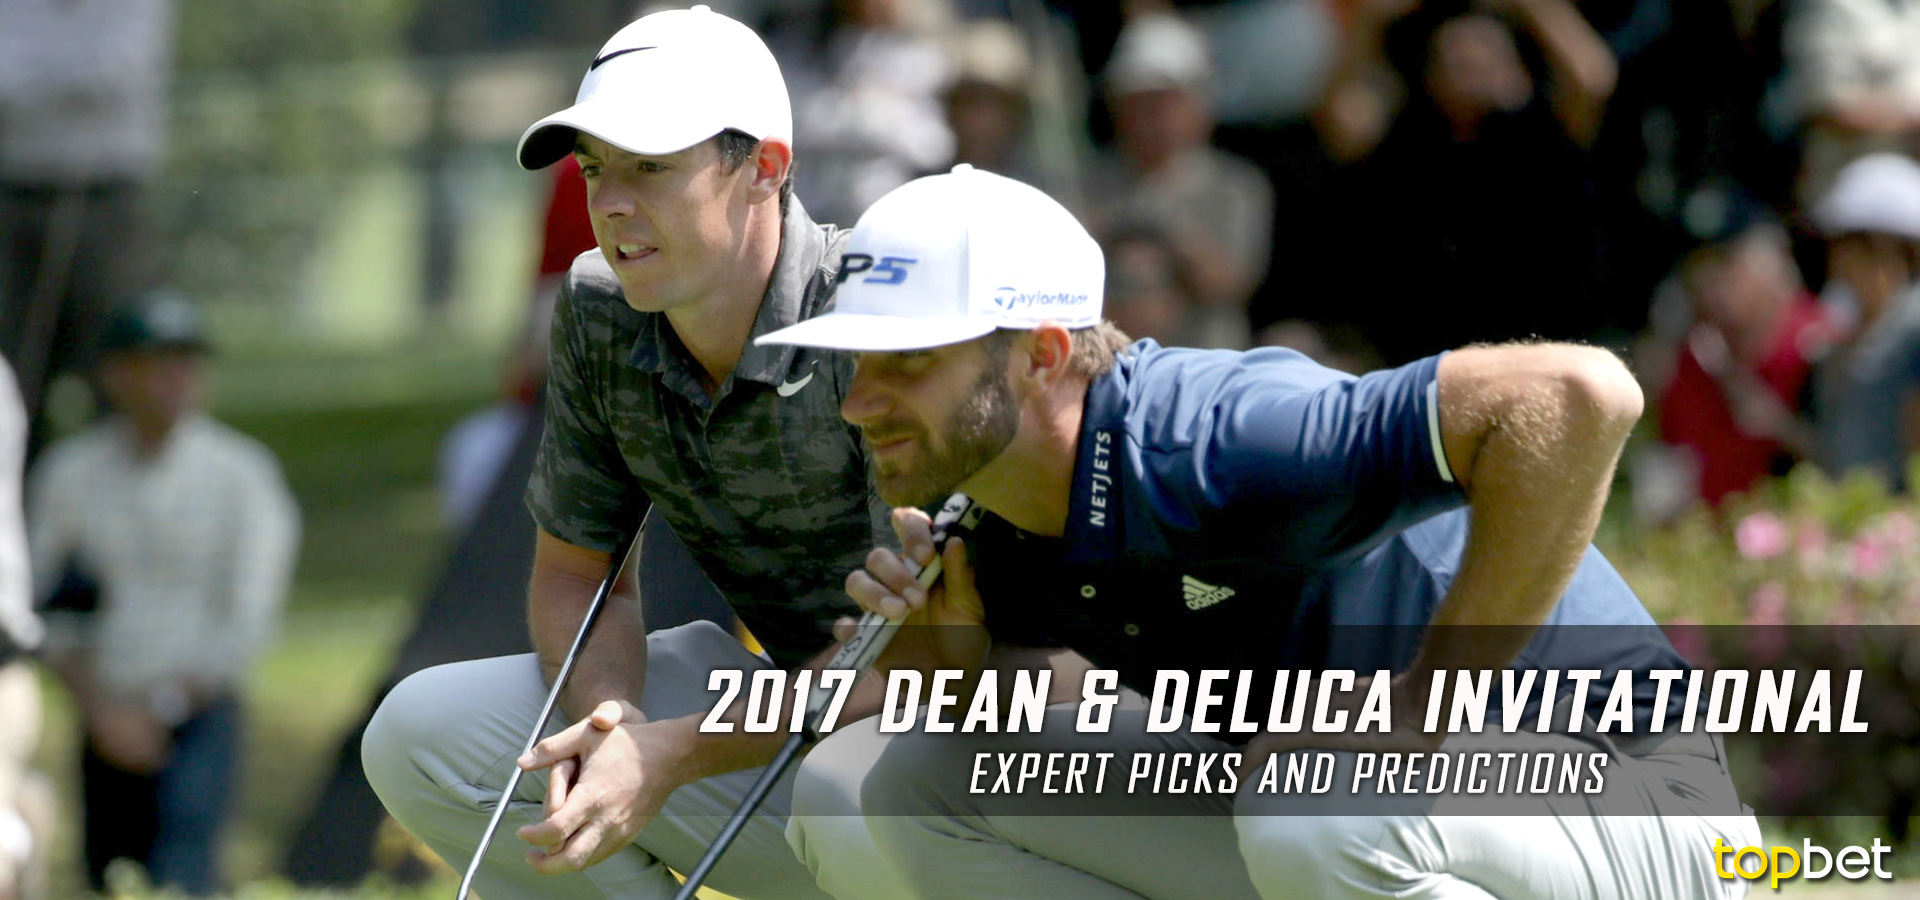 2017 Dean & DeLuca Invitational Expert Picks and Predictions – PGA Golf Betting Preview